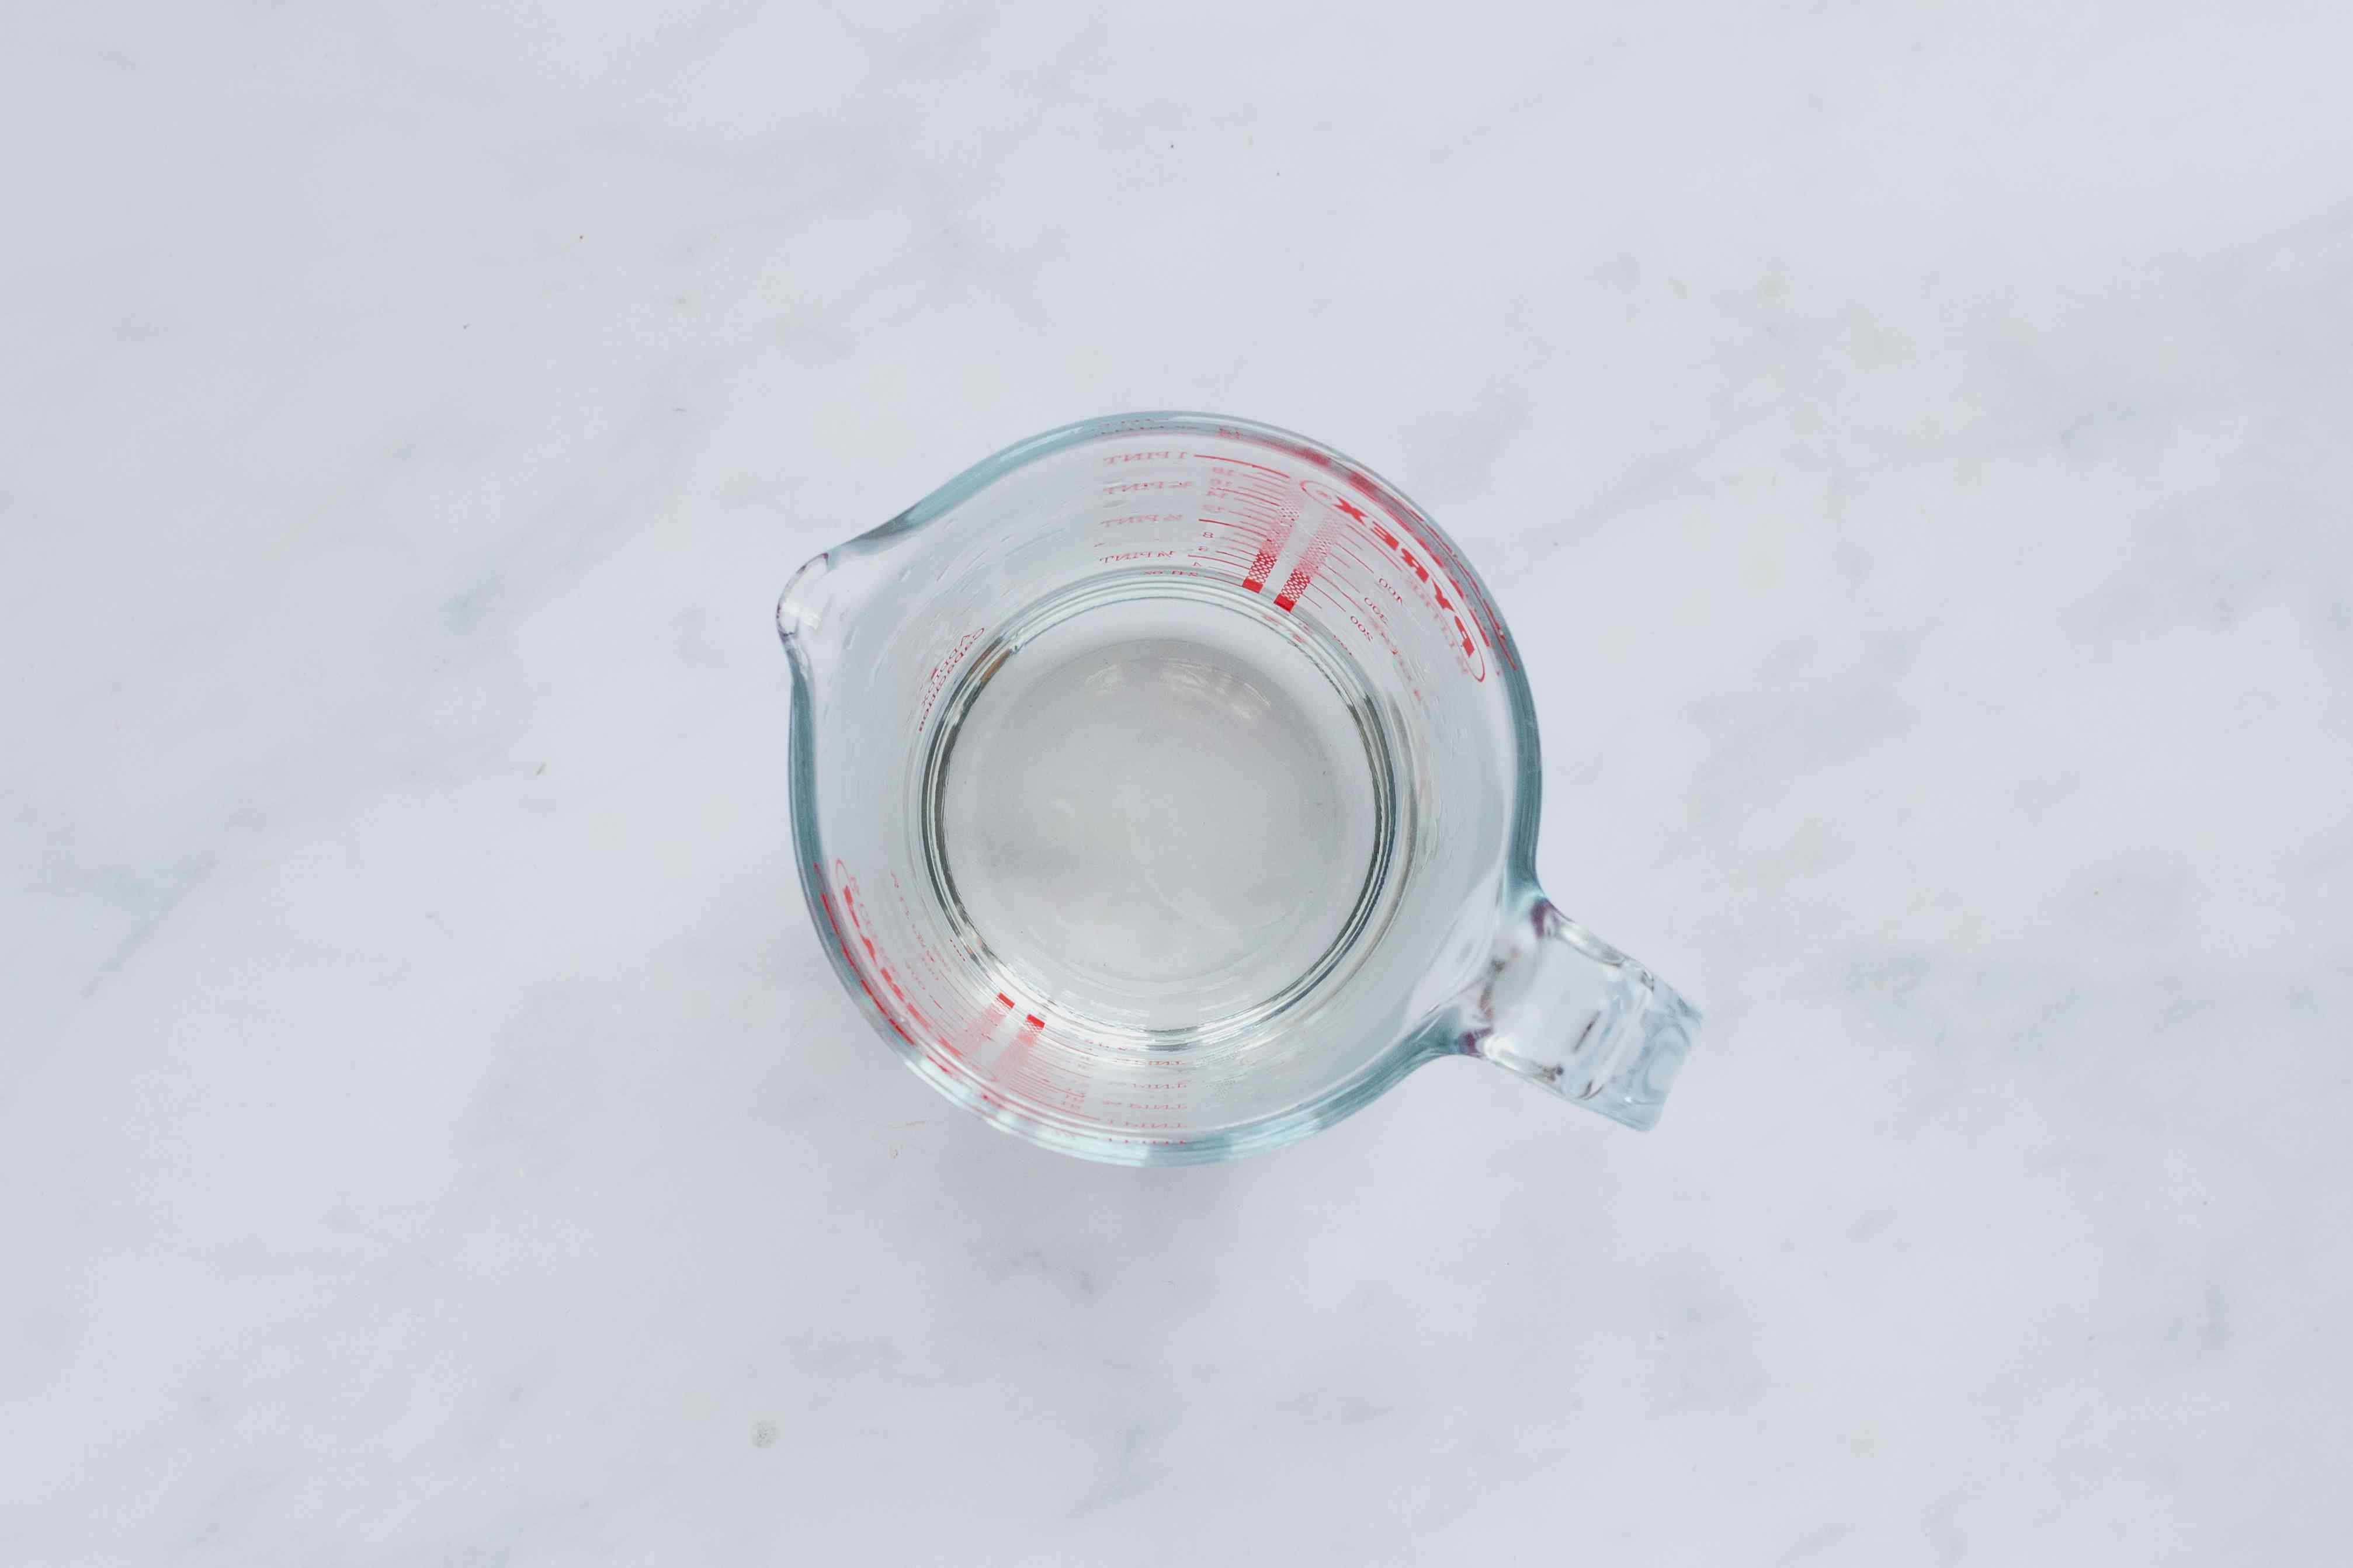 sugar and water mixture in a measuring cup